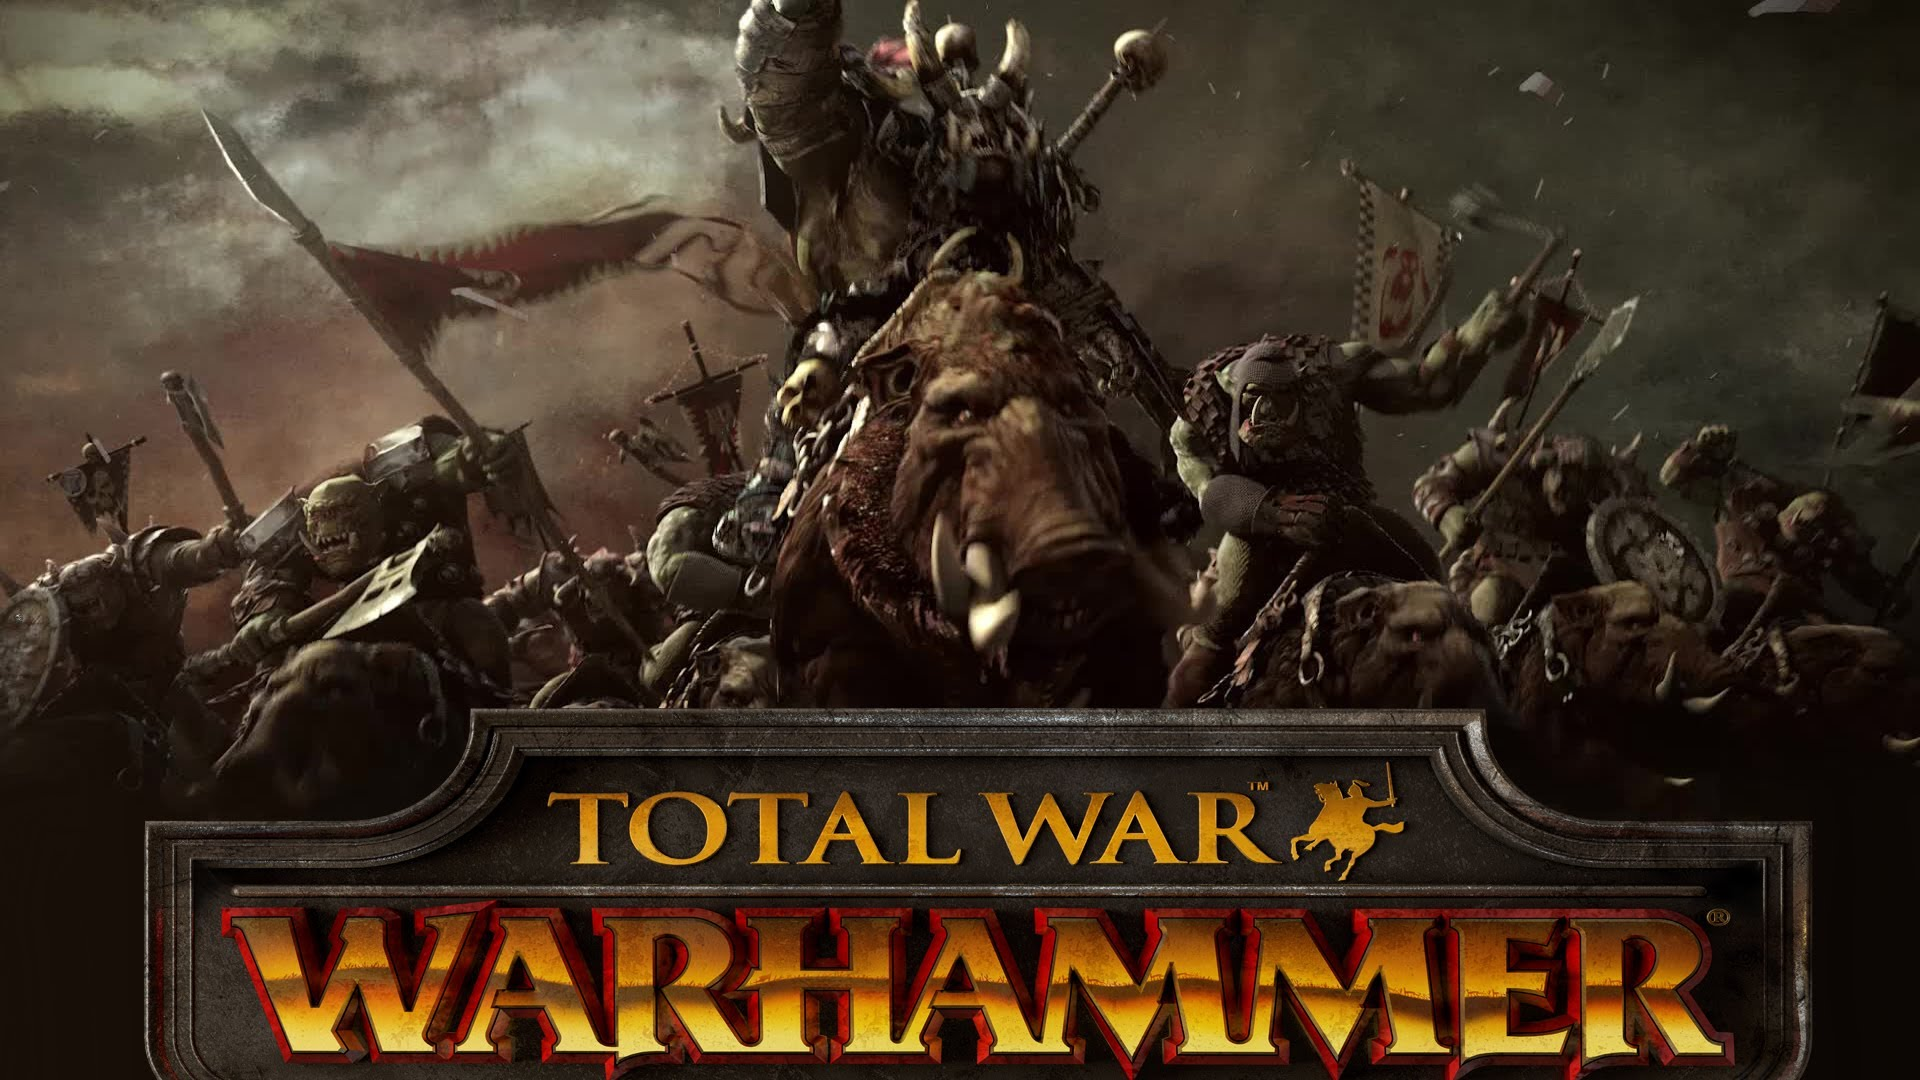 Total War Warhammer 2 Wallpaper: Total War: Warhammer Wallpapers, Pictures, Images